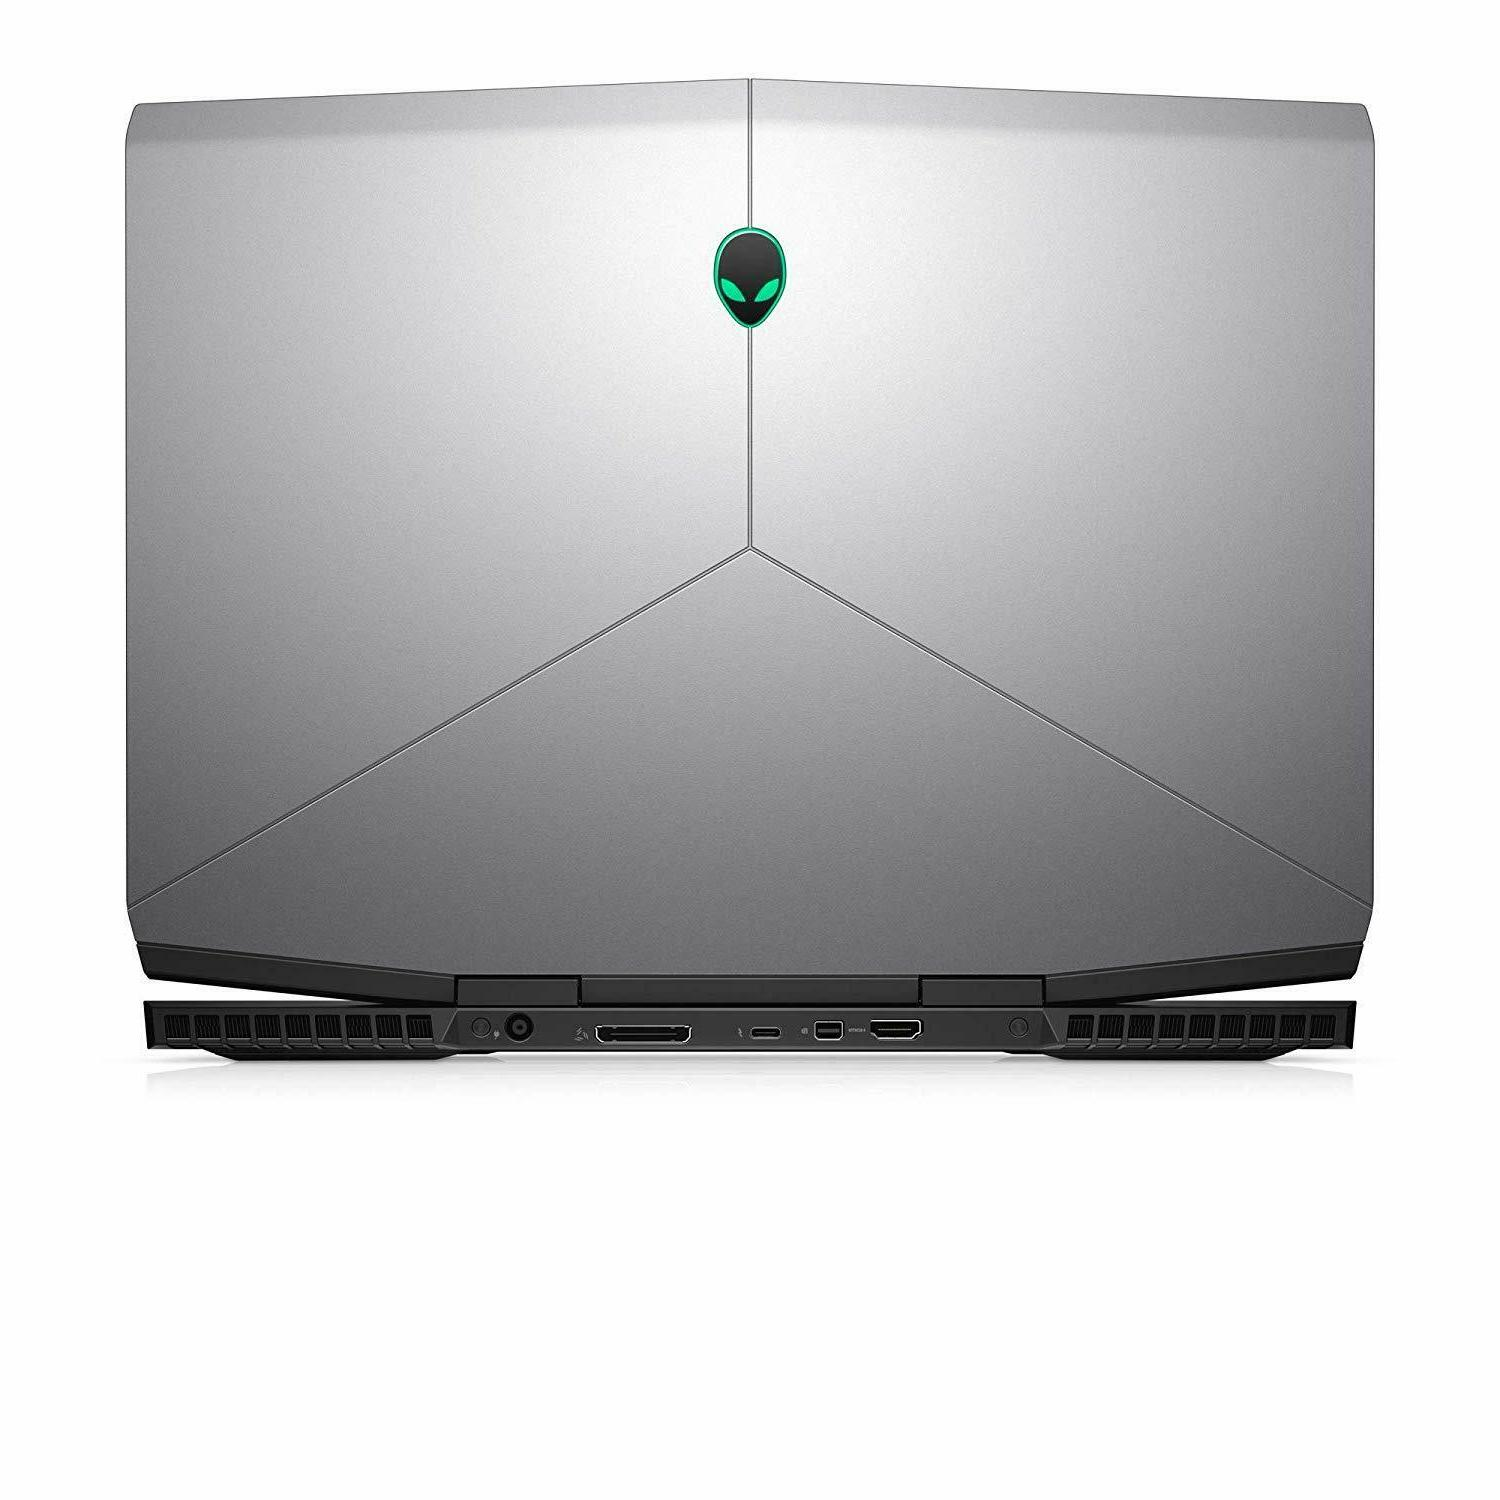 "Alienware M17 17"" SSD 1TB 16GB i7-8750H 2070 Gaming"